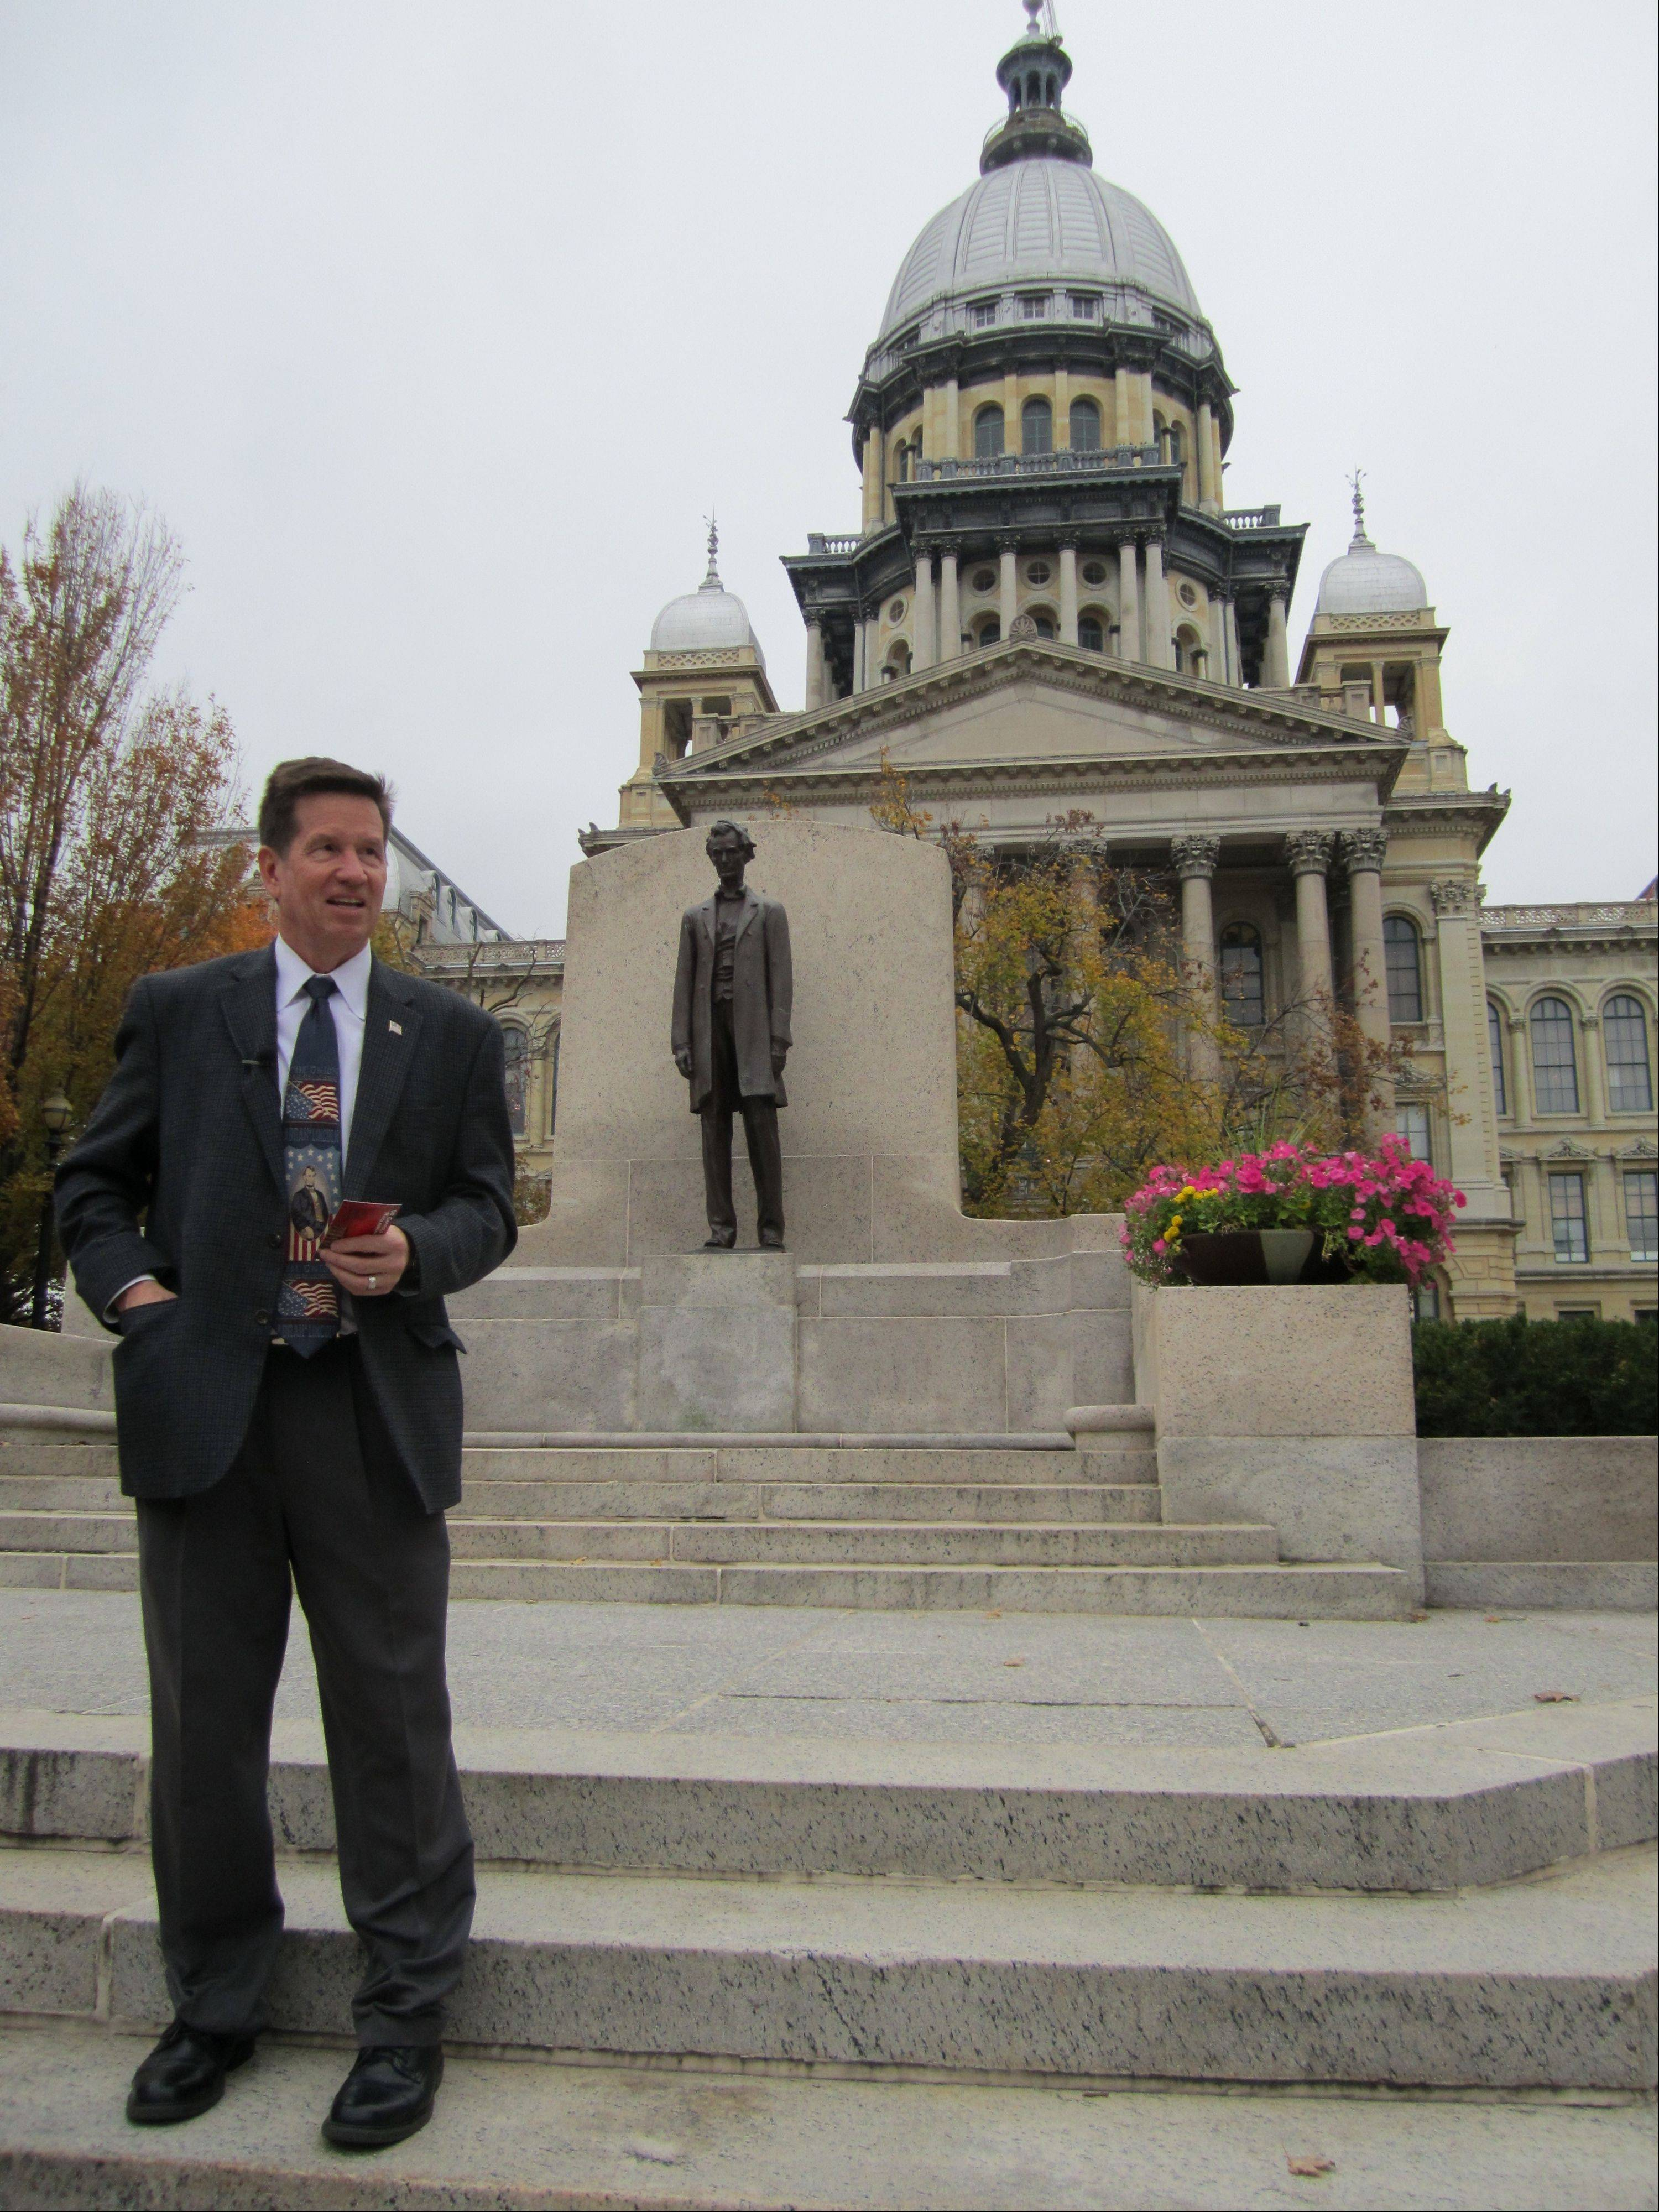 With the bronze likeness of Abraham Lincoln at his back Wednesday in Springfield, Mickey Straub successfully finished his pilgrimage to read the Gettysburg Address from the steps of all 50 state capitols.